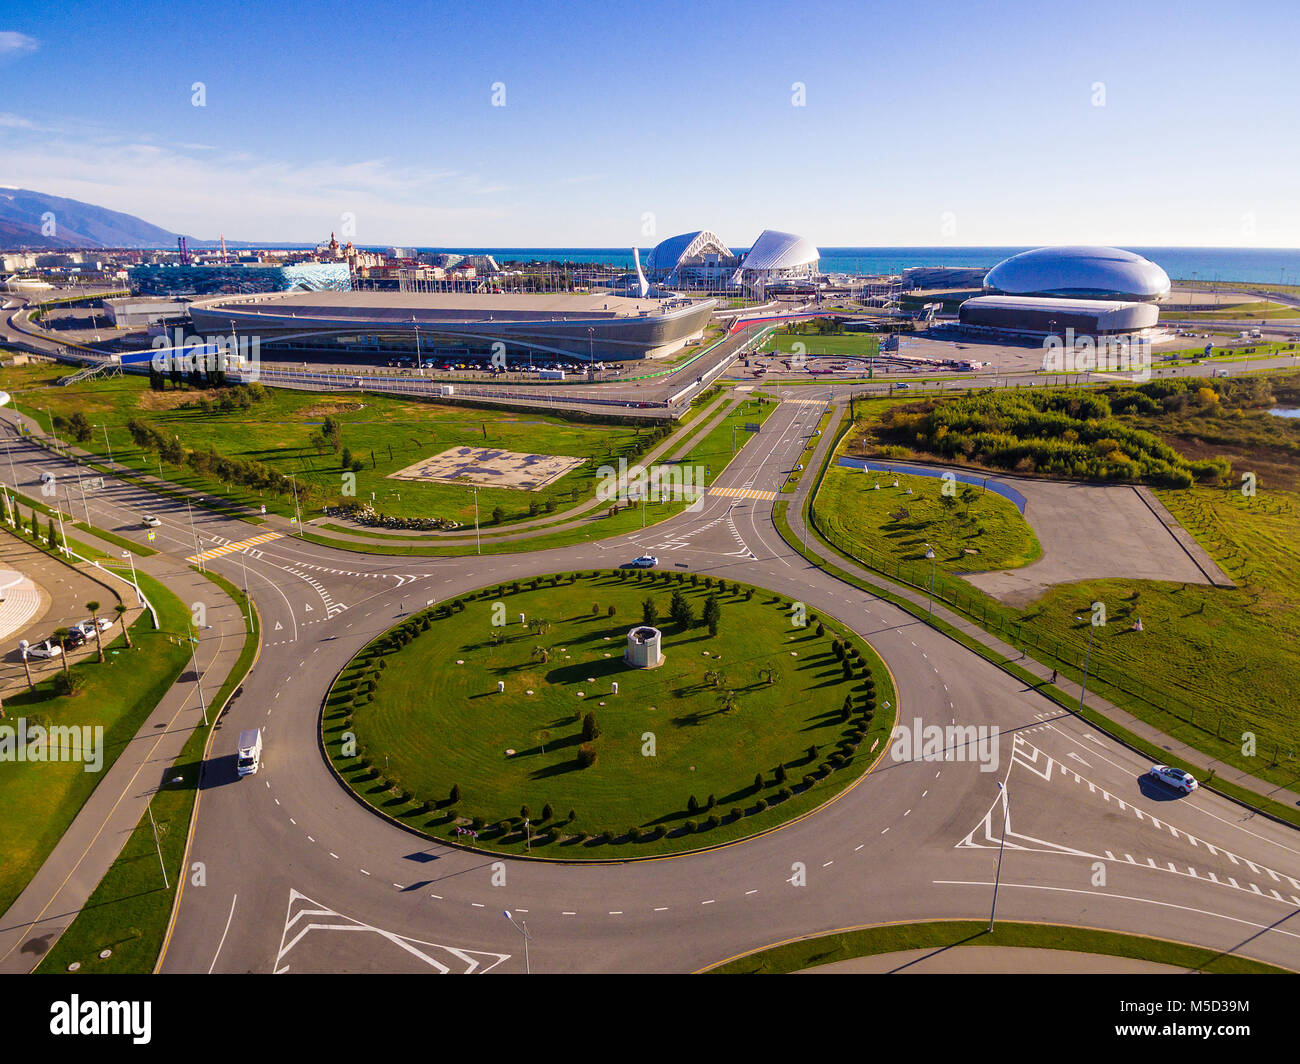 Drone view of Olympic Park and roundabout in Adlersky City District in sunny day, Sochi, Russia - Stock Image